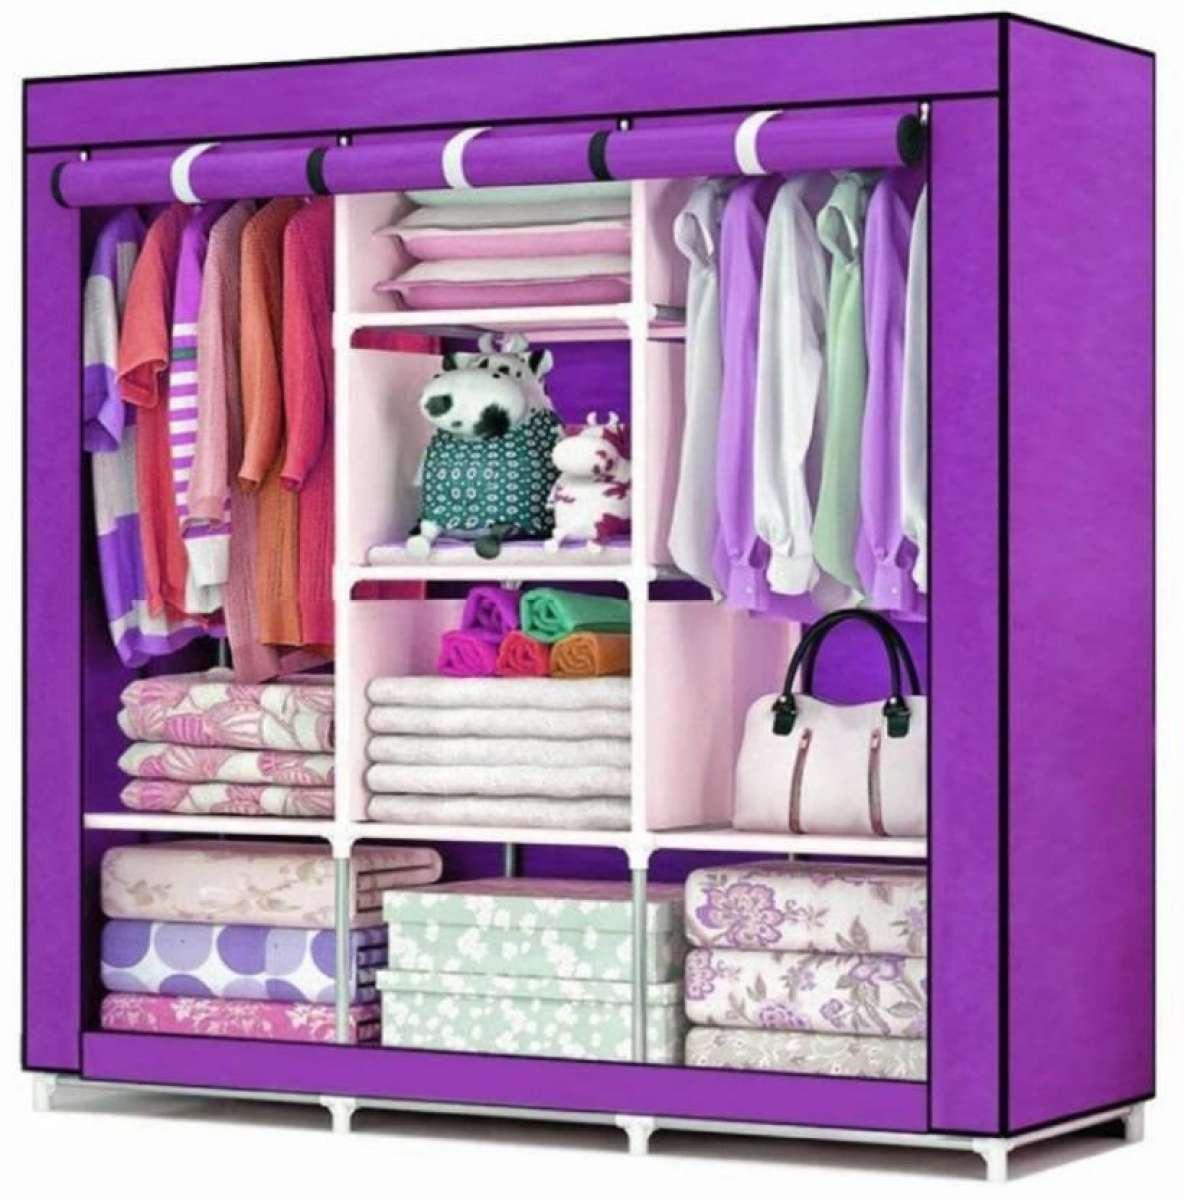 HCX Wardrobe Storage Organizer for Clothes - Purple